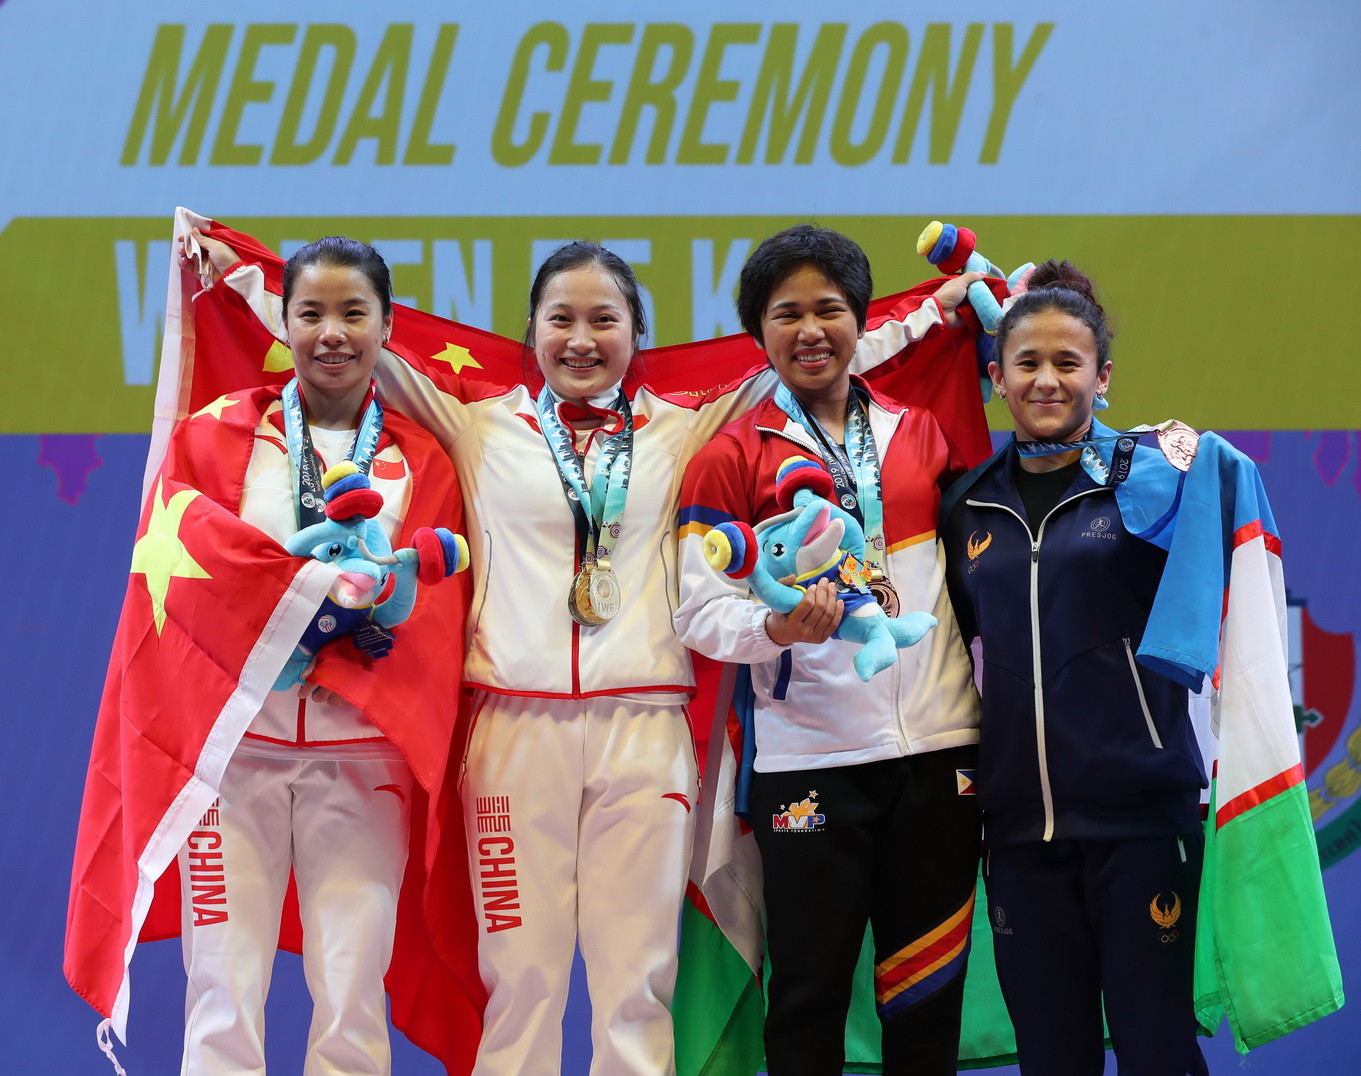 And celebrated with her fellow medallists, including the third-place finisher in the snatch, Uzbekistan's Muattar Nabieva ©IWF